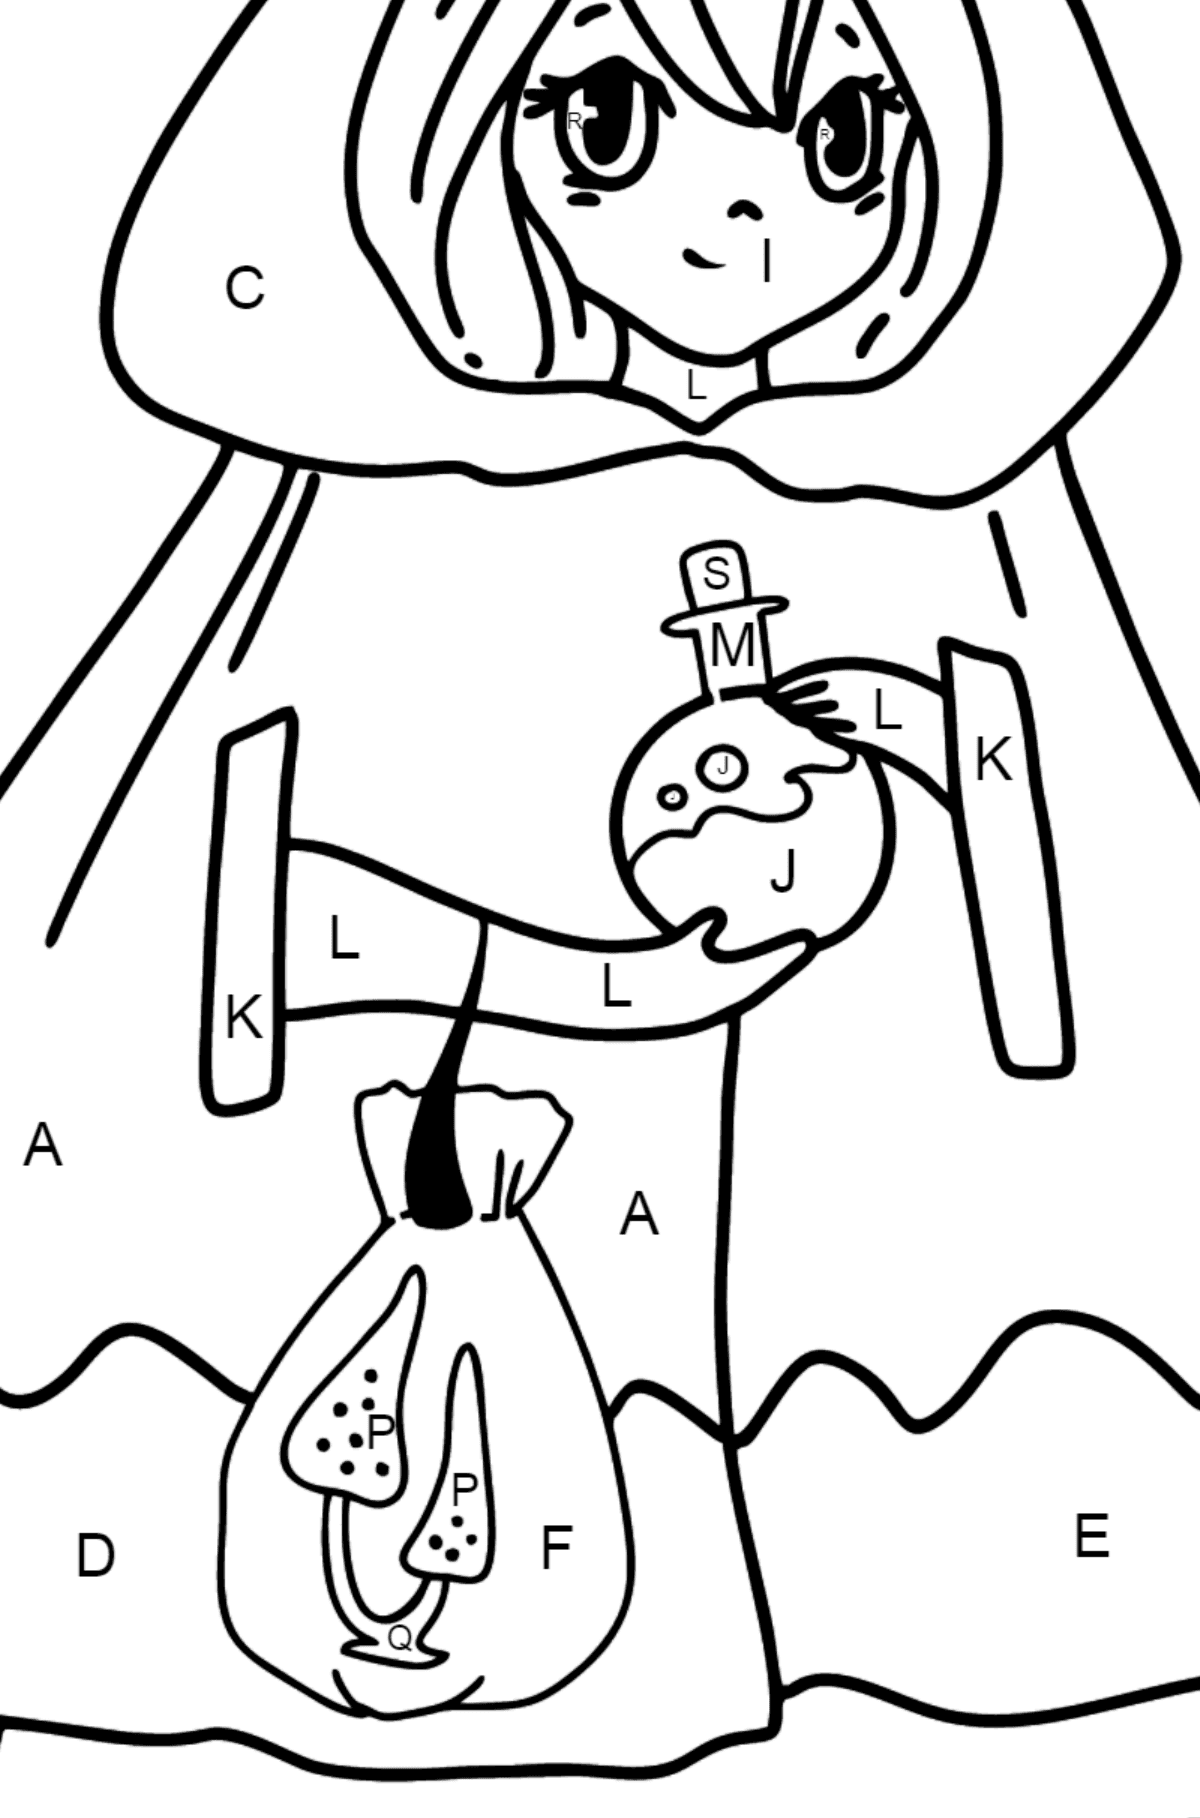 Anime Girl Witch Coloring Pages - Coloring by Letters for Kids